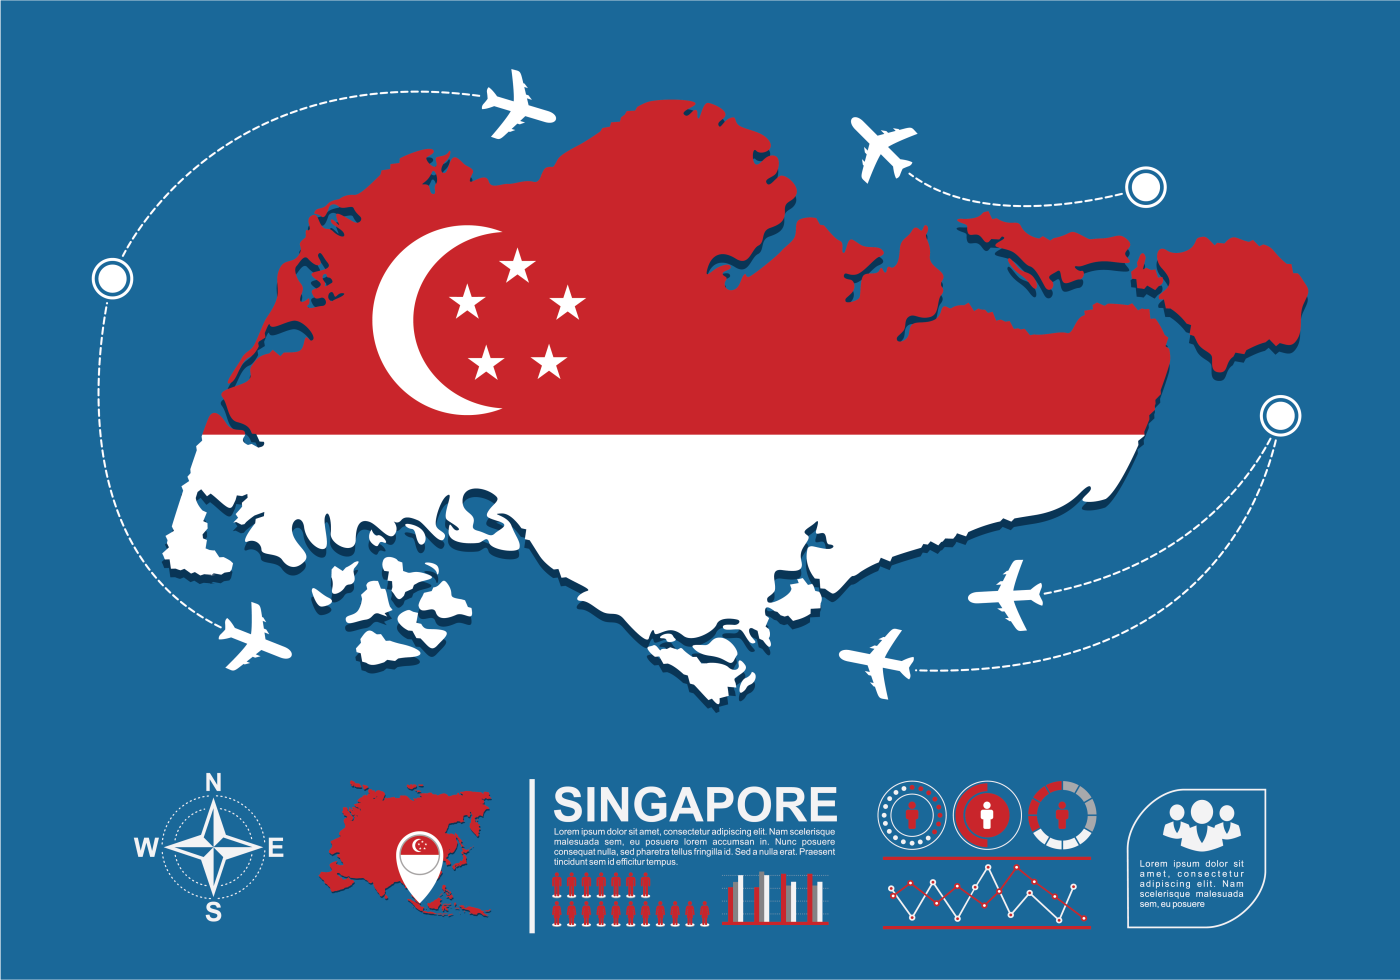 Singapore Map Infographic Download Free Vector Art